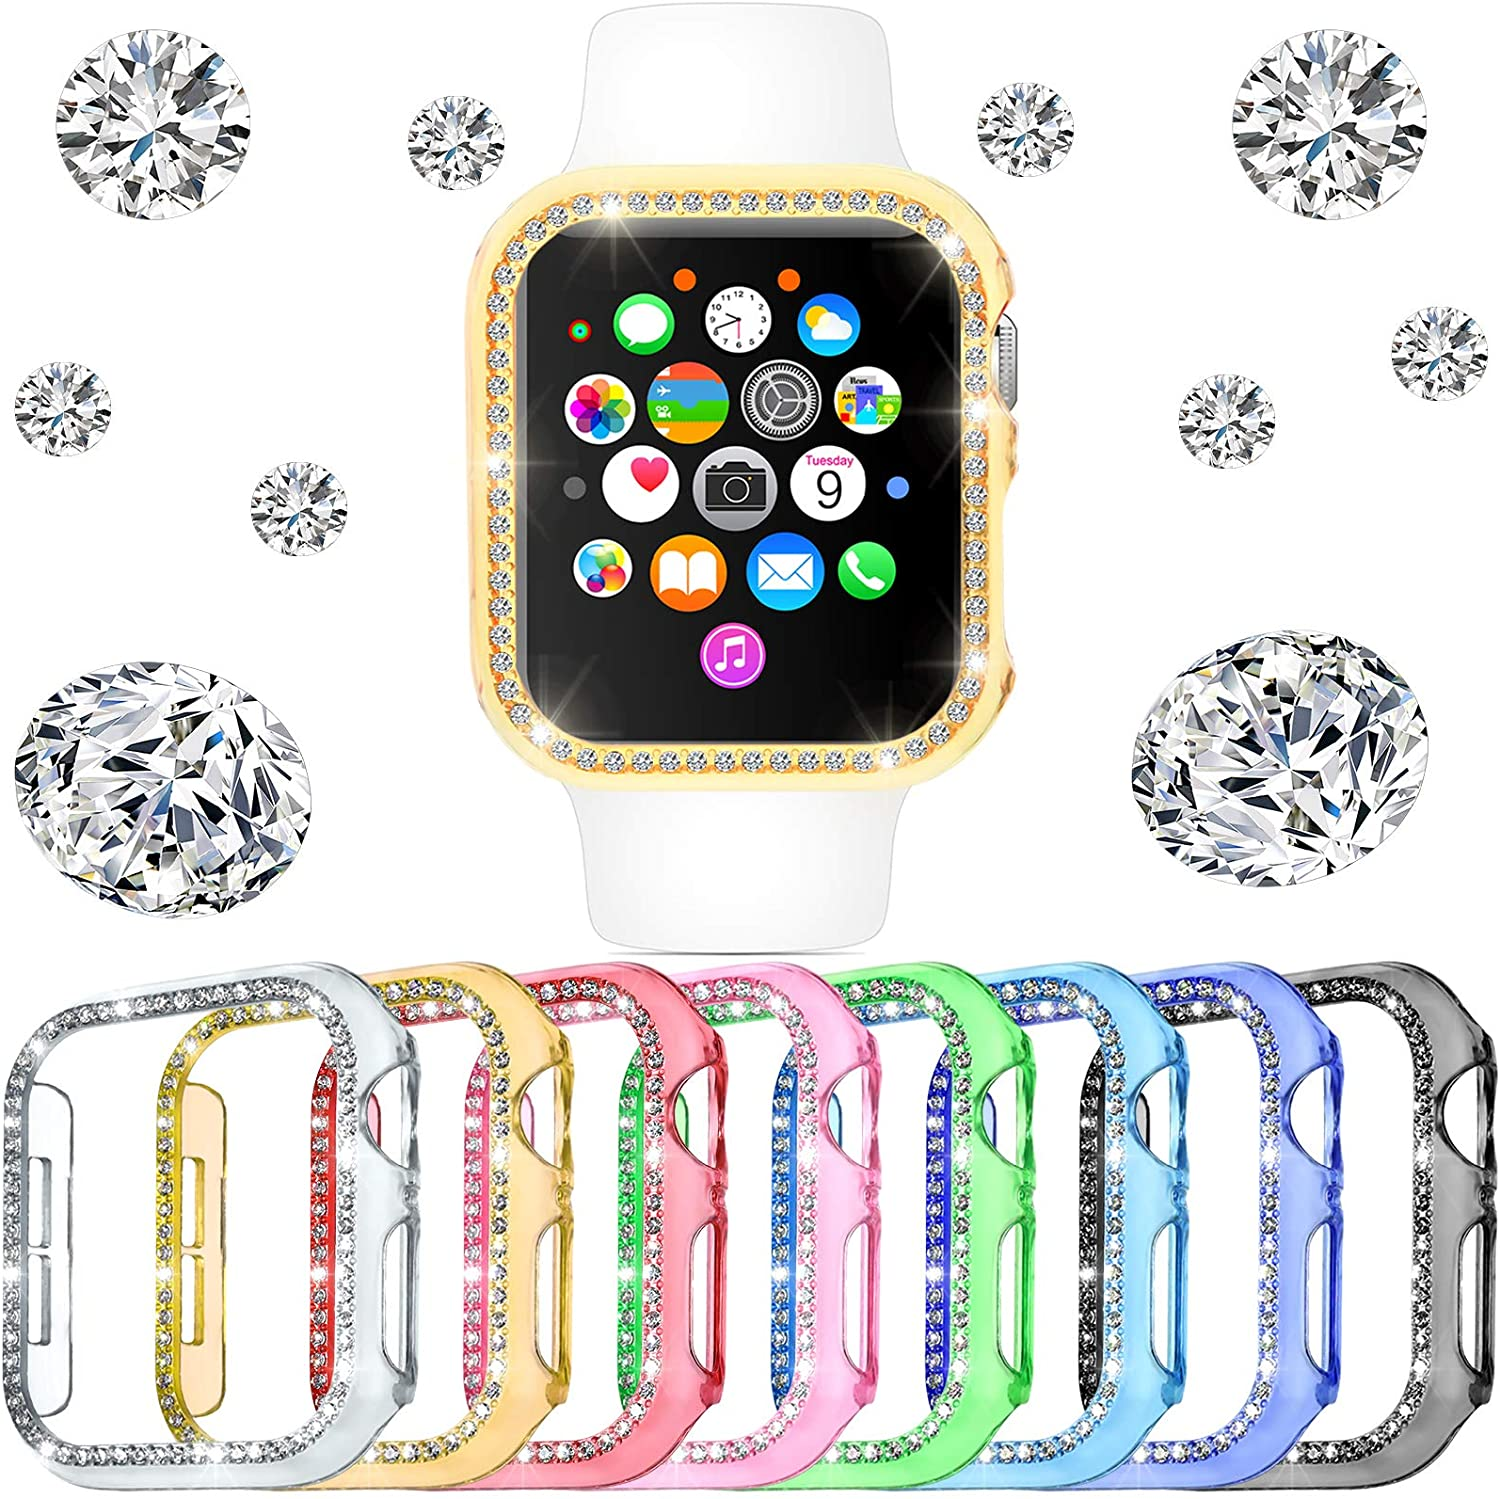 8 Pieces Watch Protector Compatible with iWatch Series 6/5/4/SE Bling Crystal Diamond Bumper with Shiny Rhinestones Diamonds Cover Plated Hard Frame Case Accessories for Women Girls, 8 Colors (38mm)